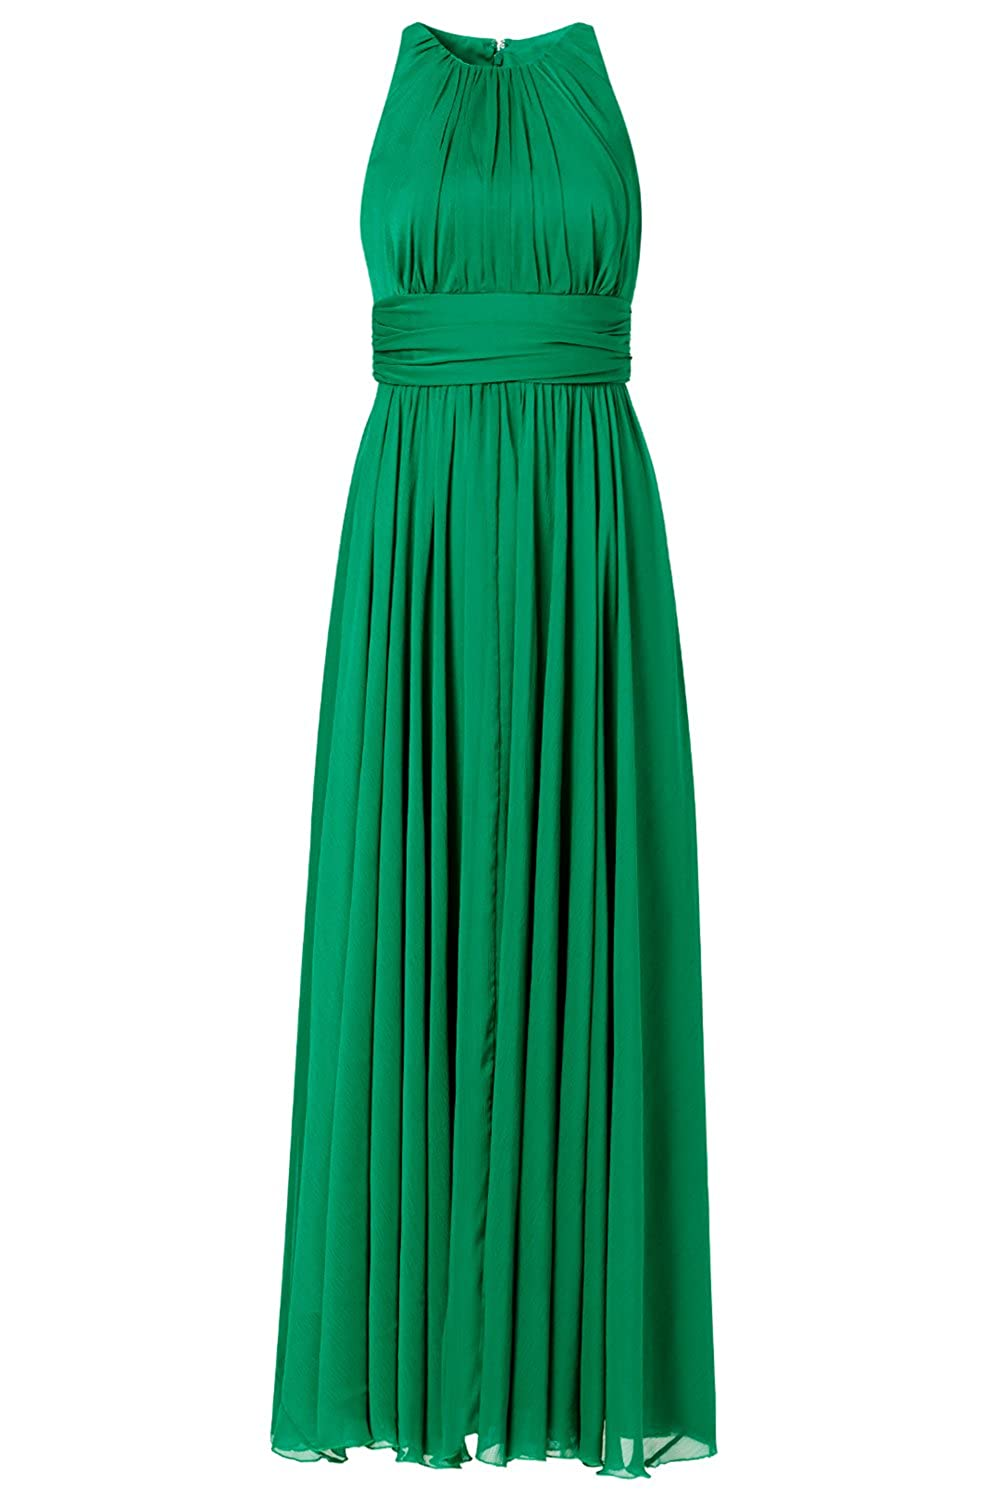 AngelDragon Elegant Halter Green Ruffle Formal Evening Dress Empire Prom Gown